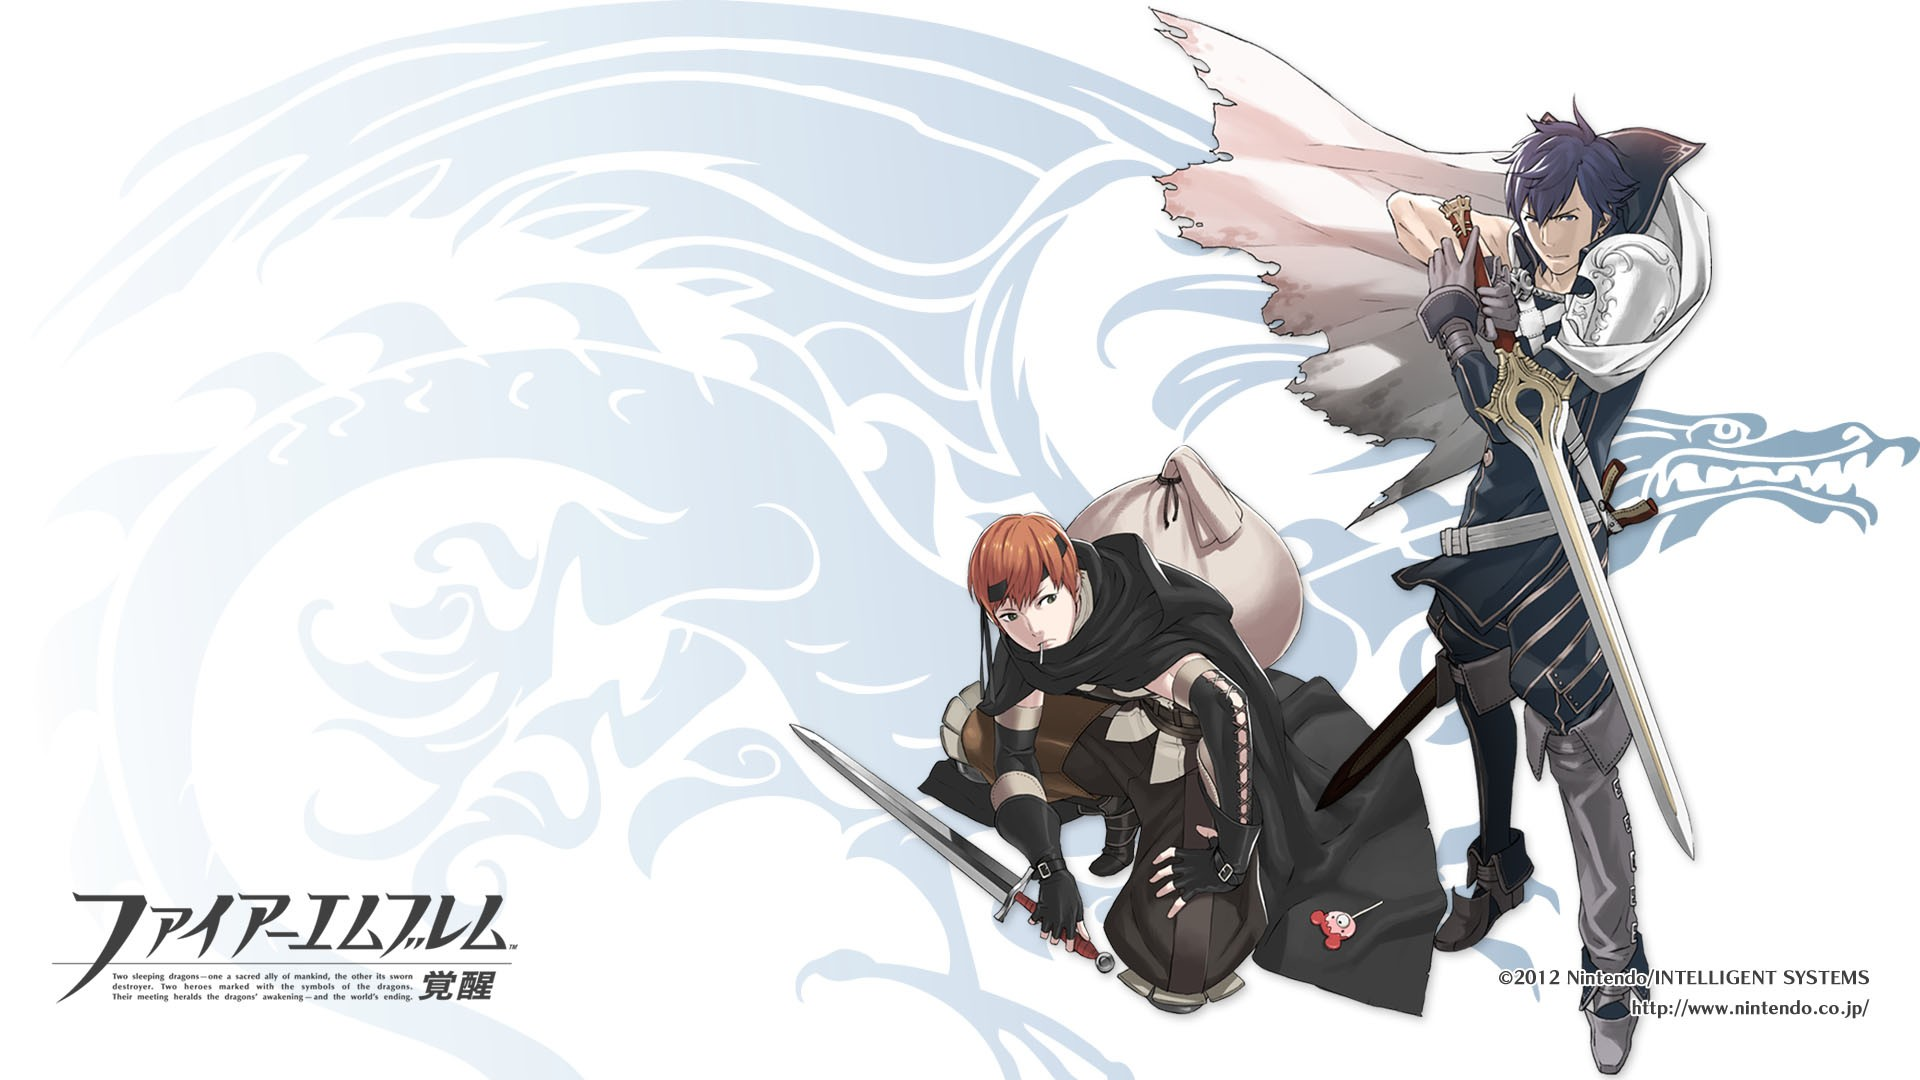 Fire Emblem Wallpaper Download Free Stunning High Resolution